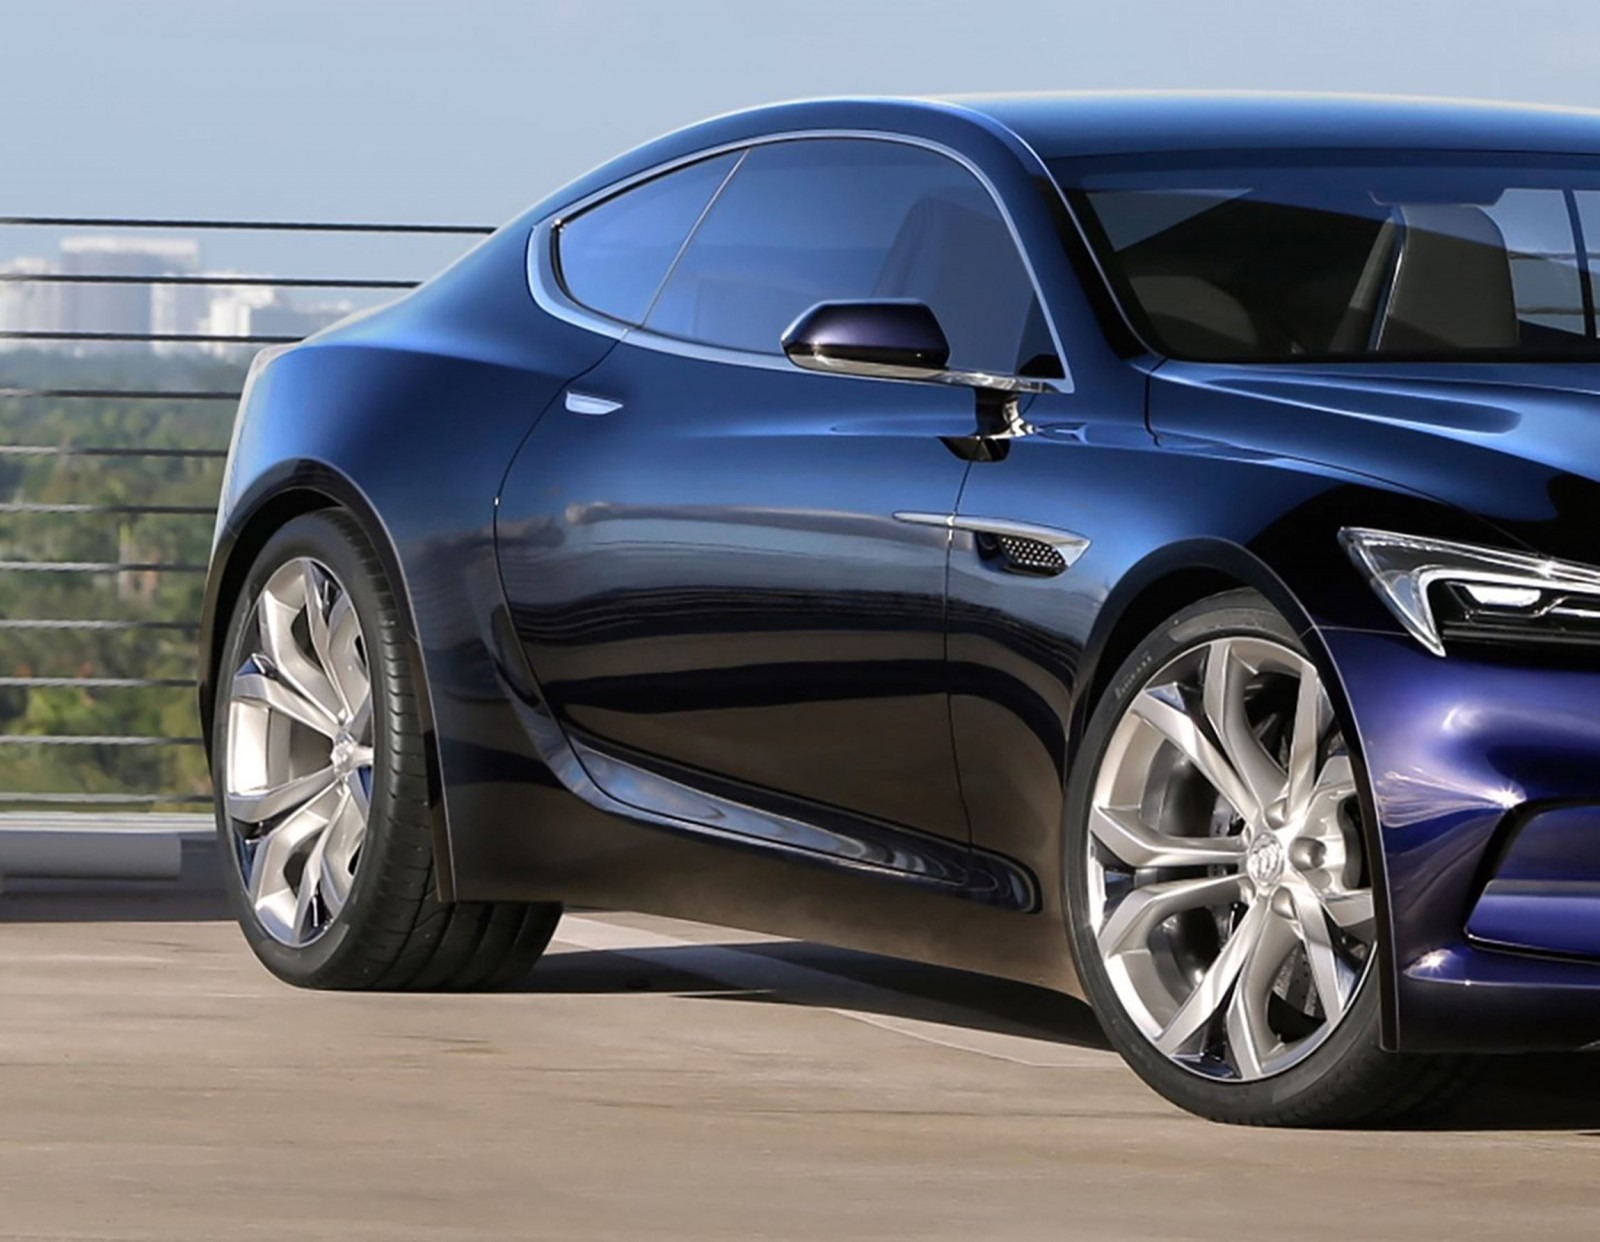 2016 Buick AVISTA Concept SuperCoupe As First Glimpse of